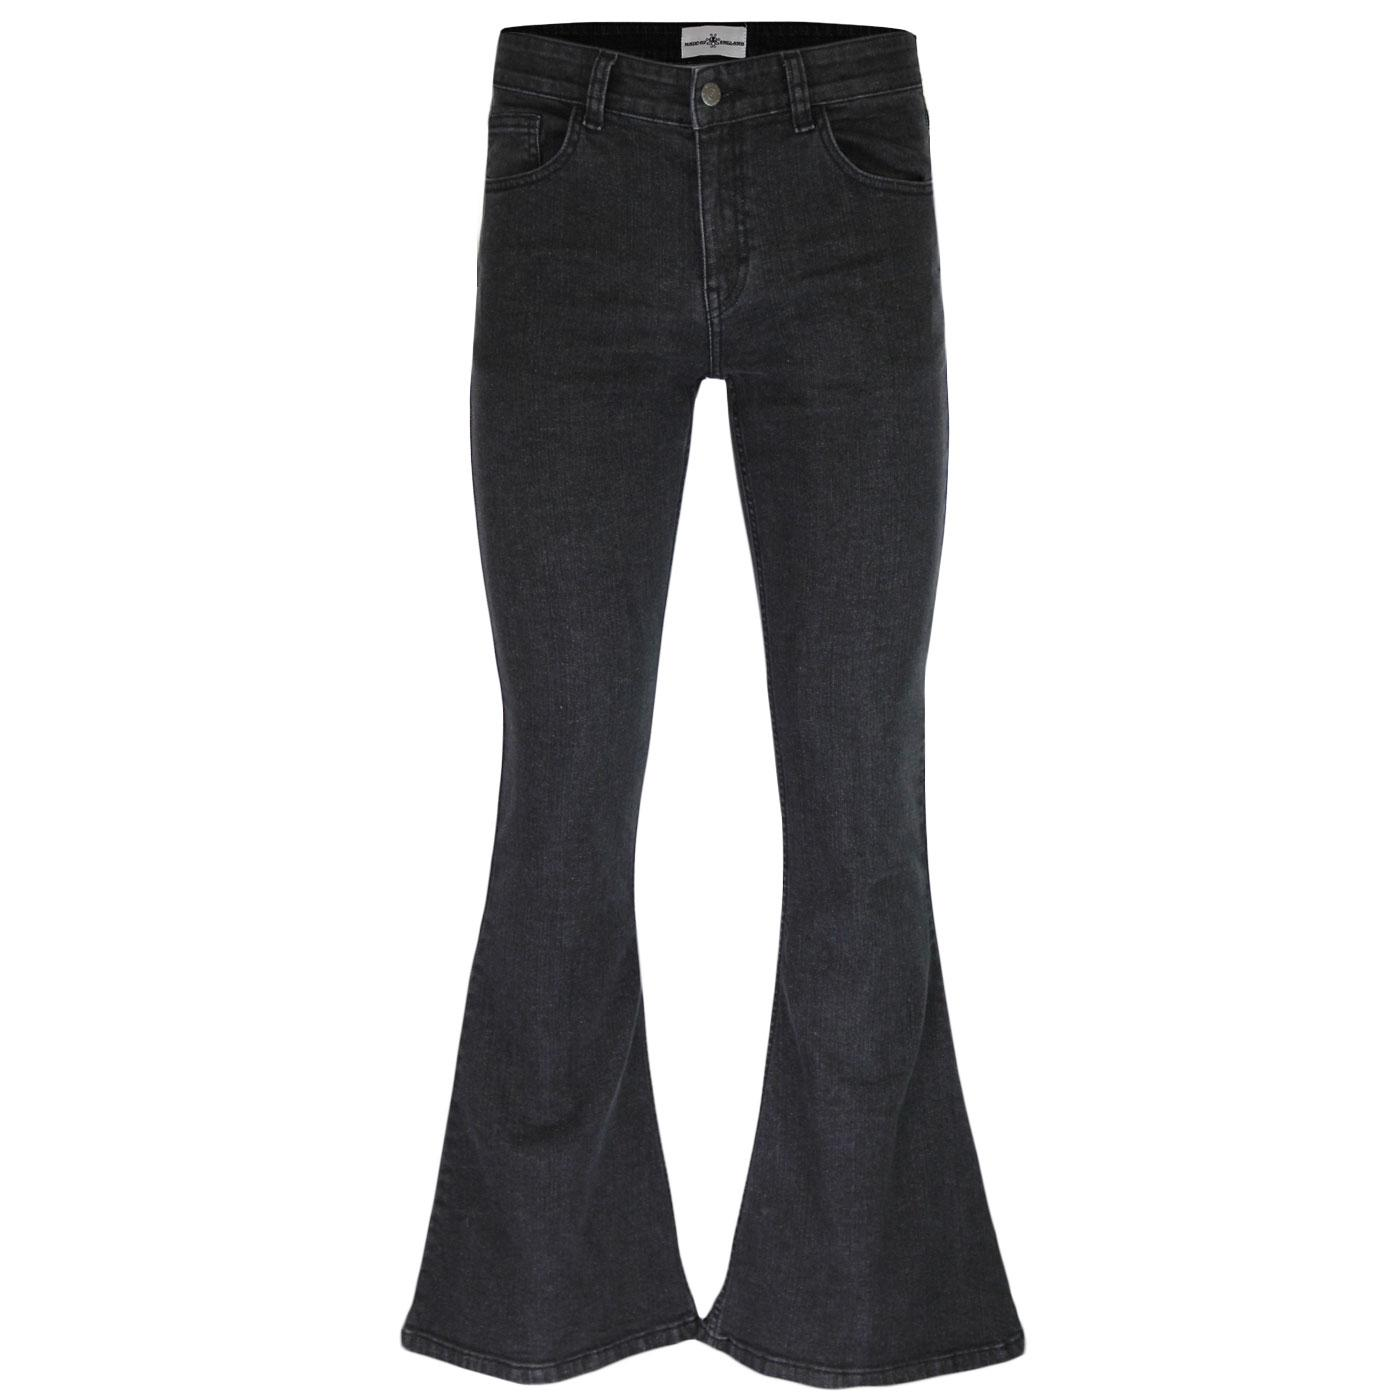 Madcap England New Rock Stretch Retro 1970s Denim Bellbottom Flares in Black Stonewash